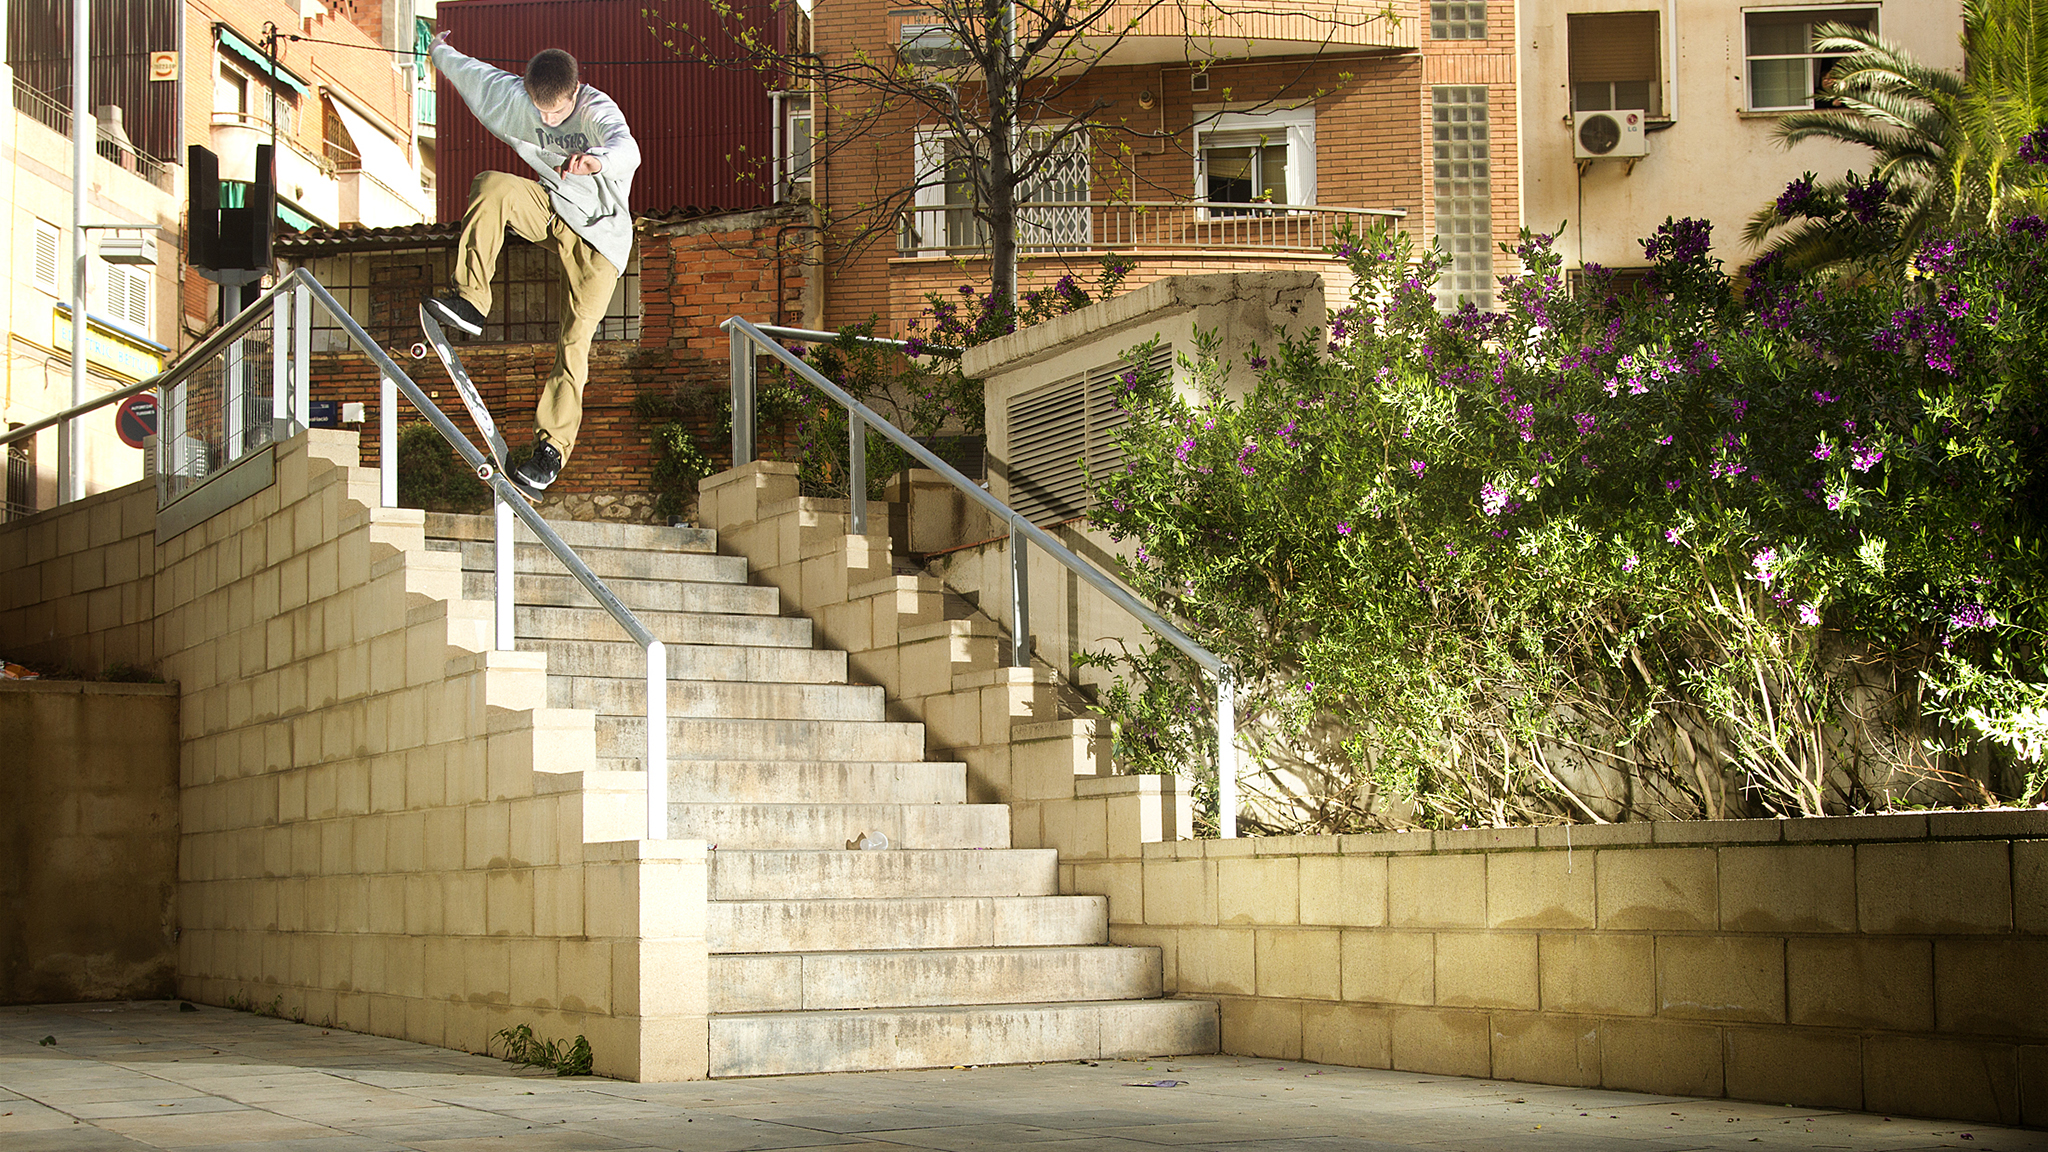 Chris Joslin makes his Plan B debut in the highly anticipated Plan B video, True.